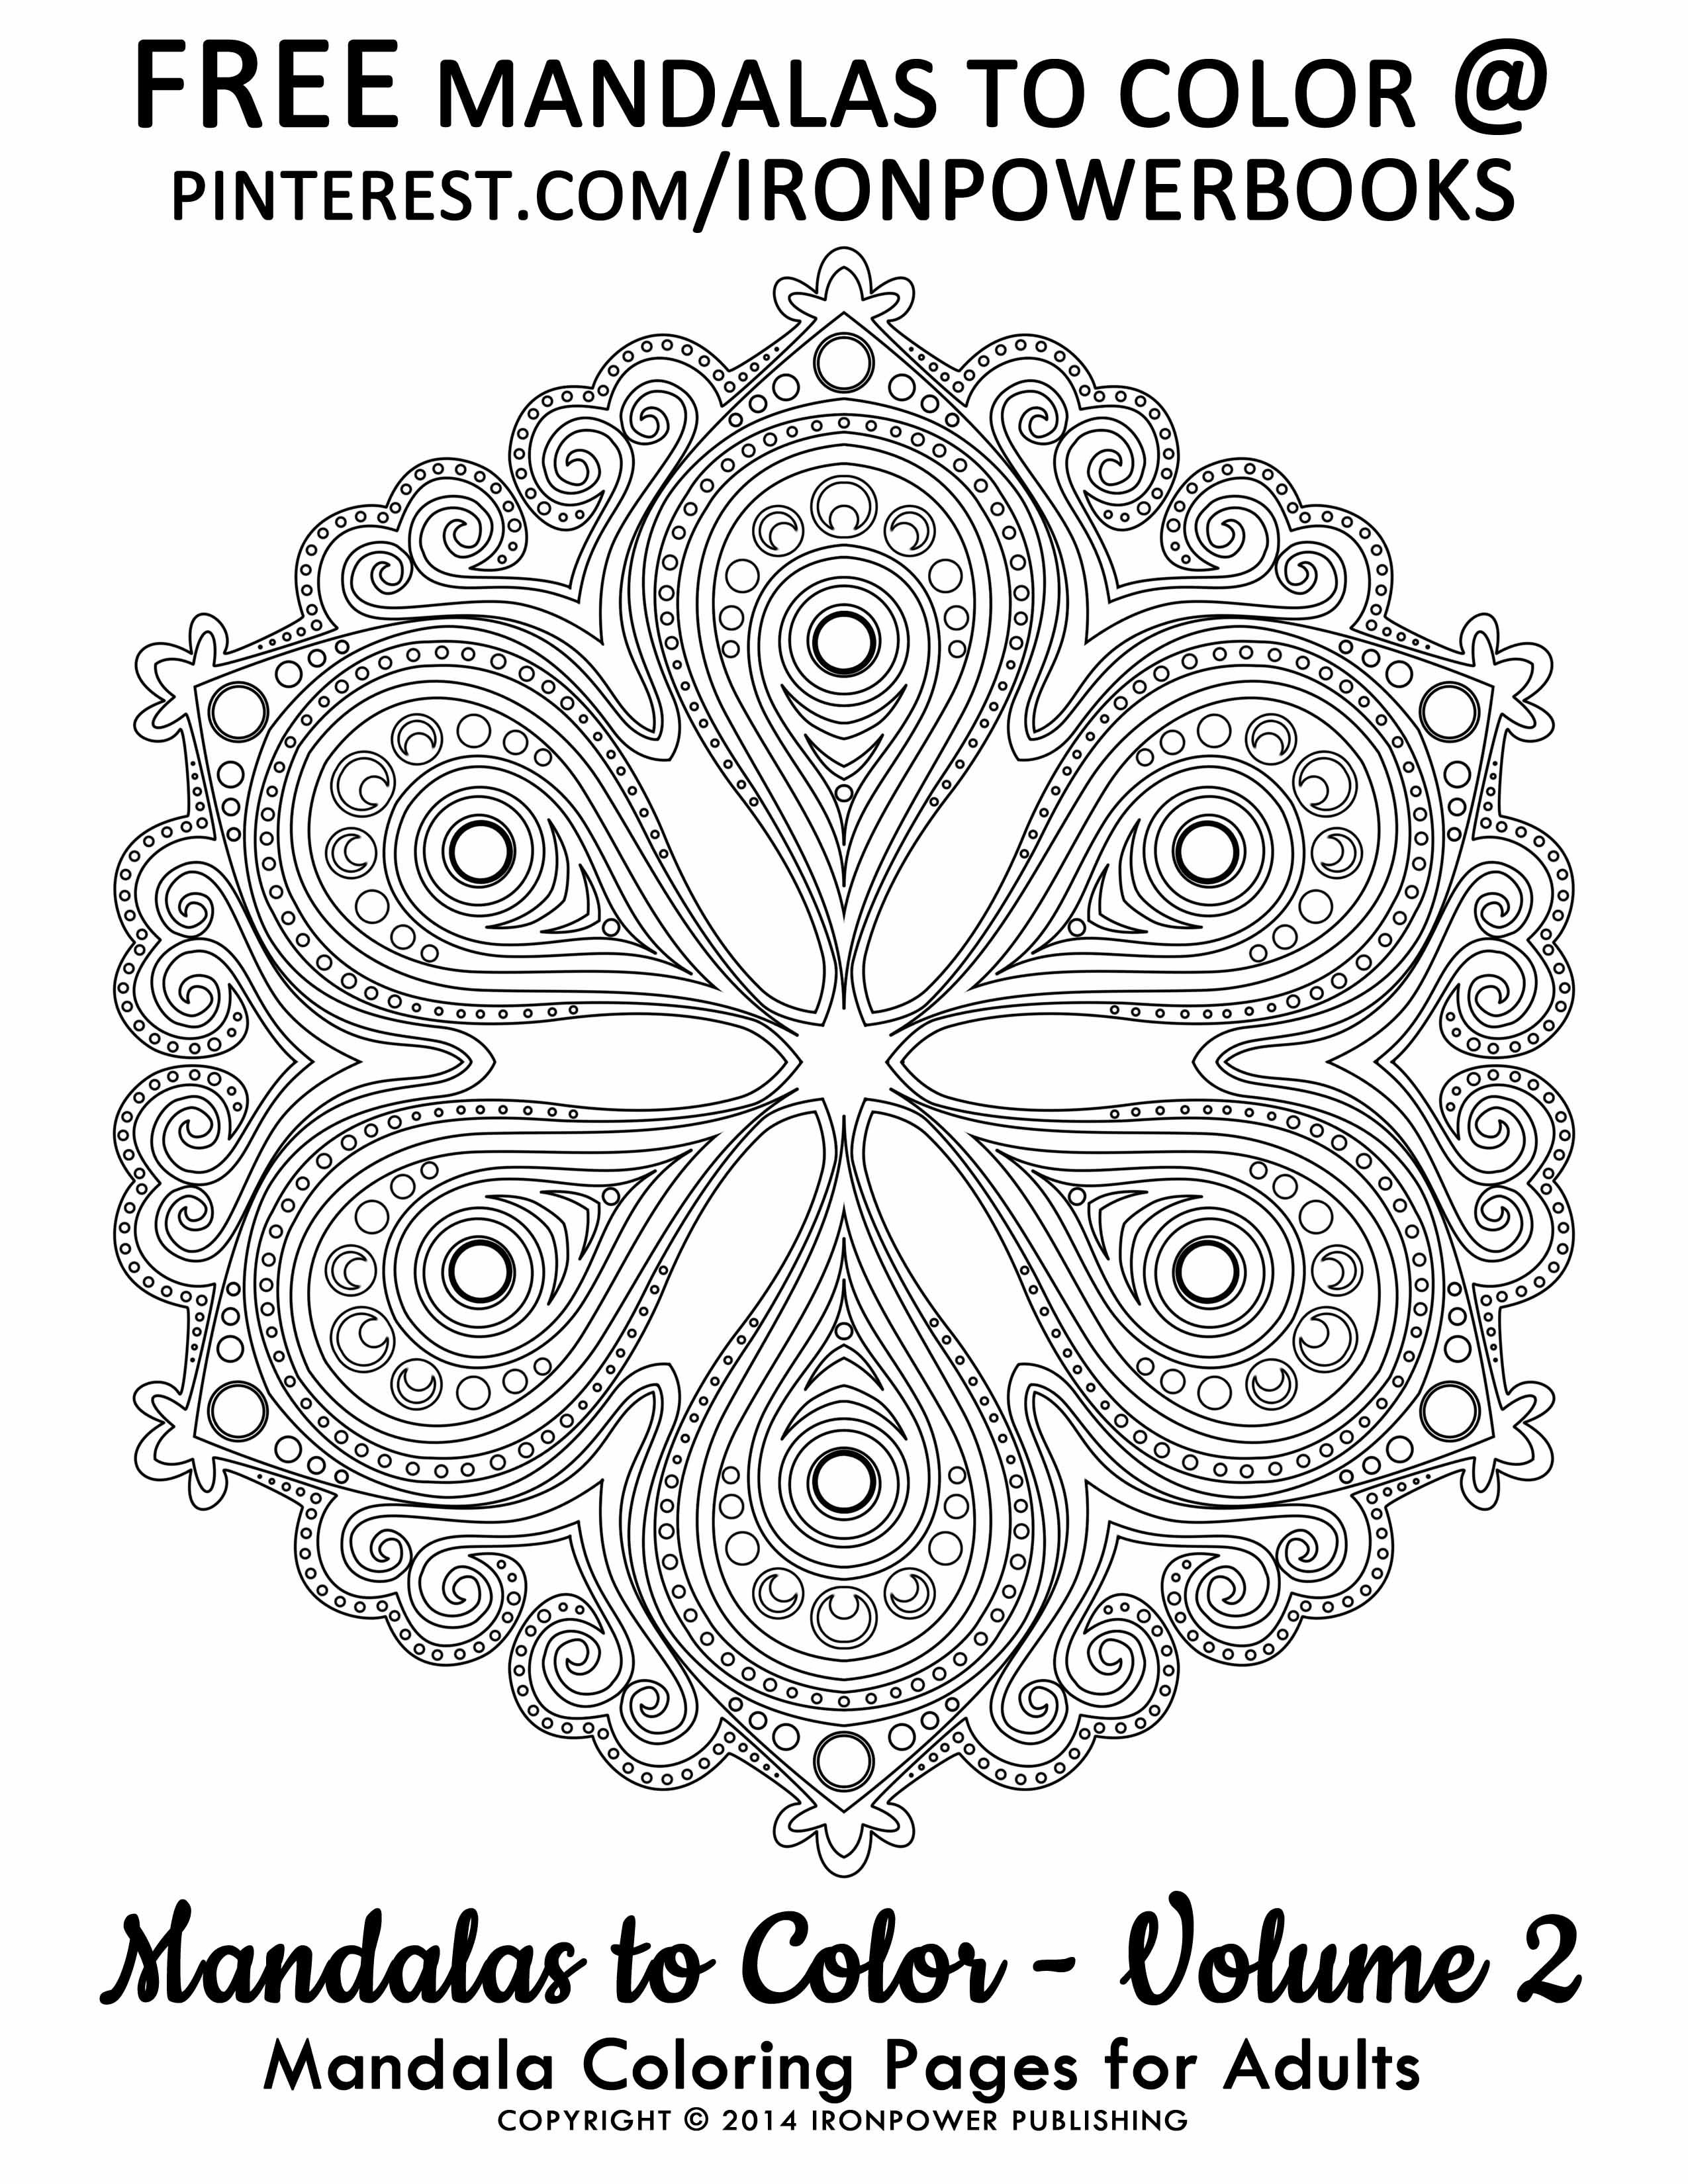 Hello there cathymalchiodi this is a FREE Mandala